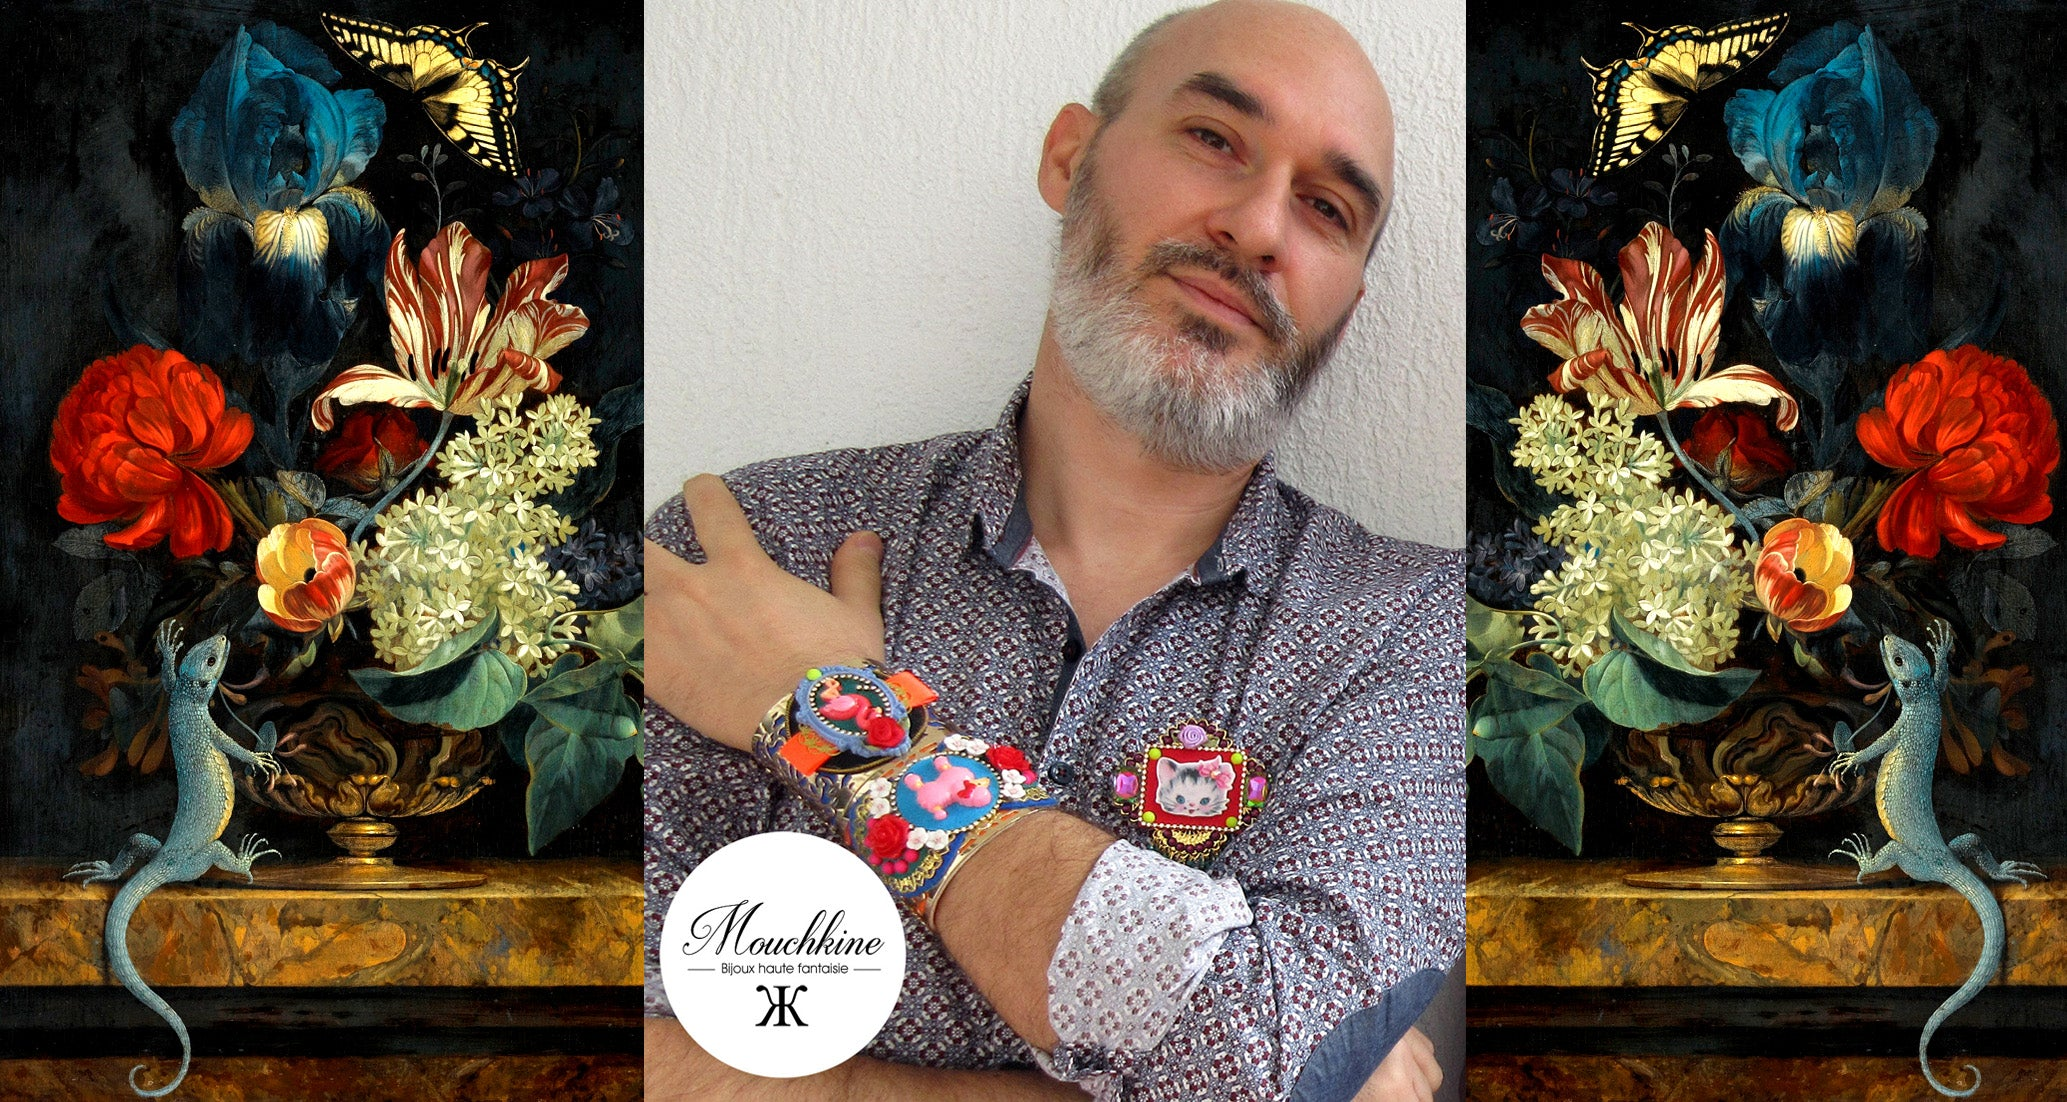 mouchkine jewelry art director jean-marie Boillot, handmade and made in france jewels